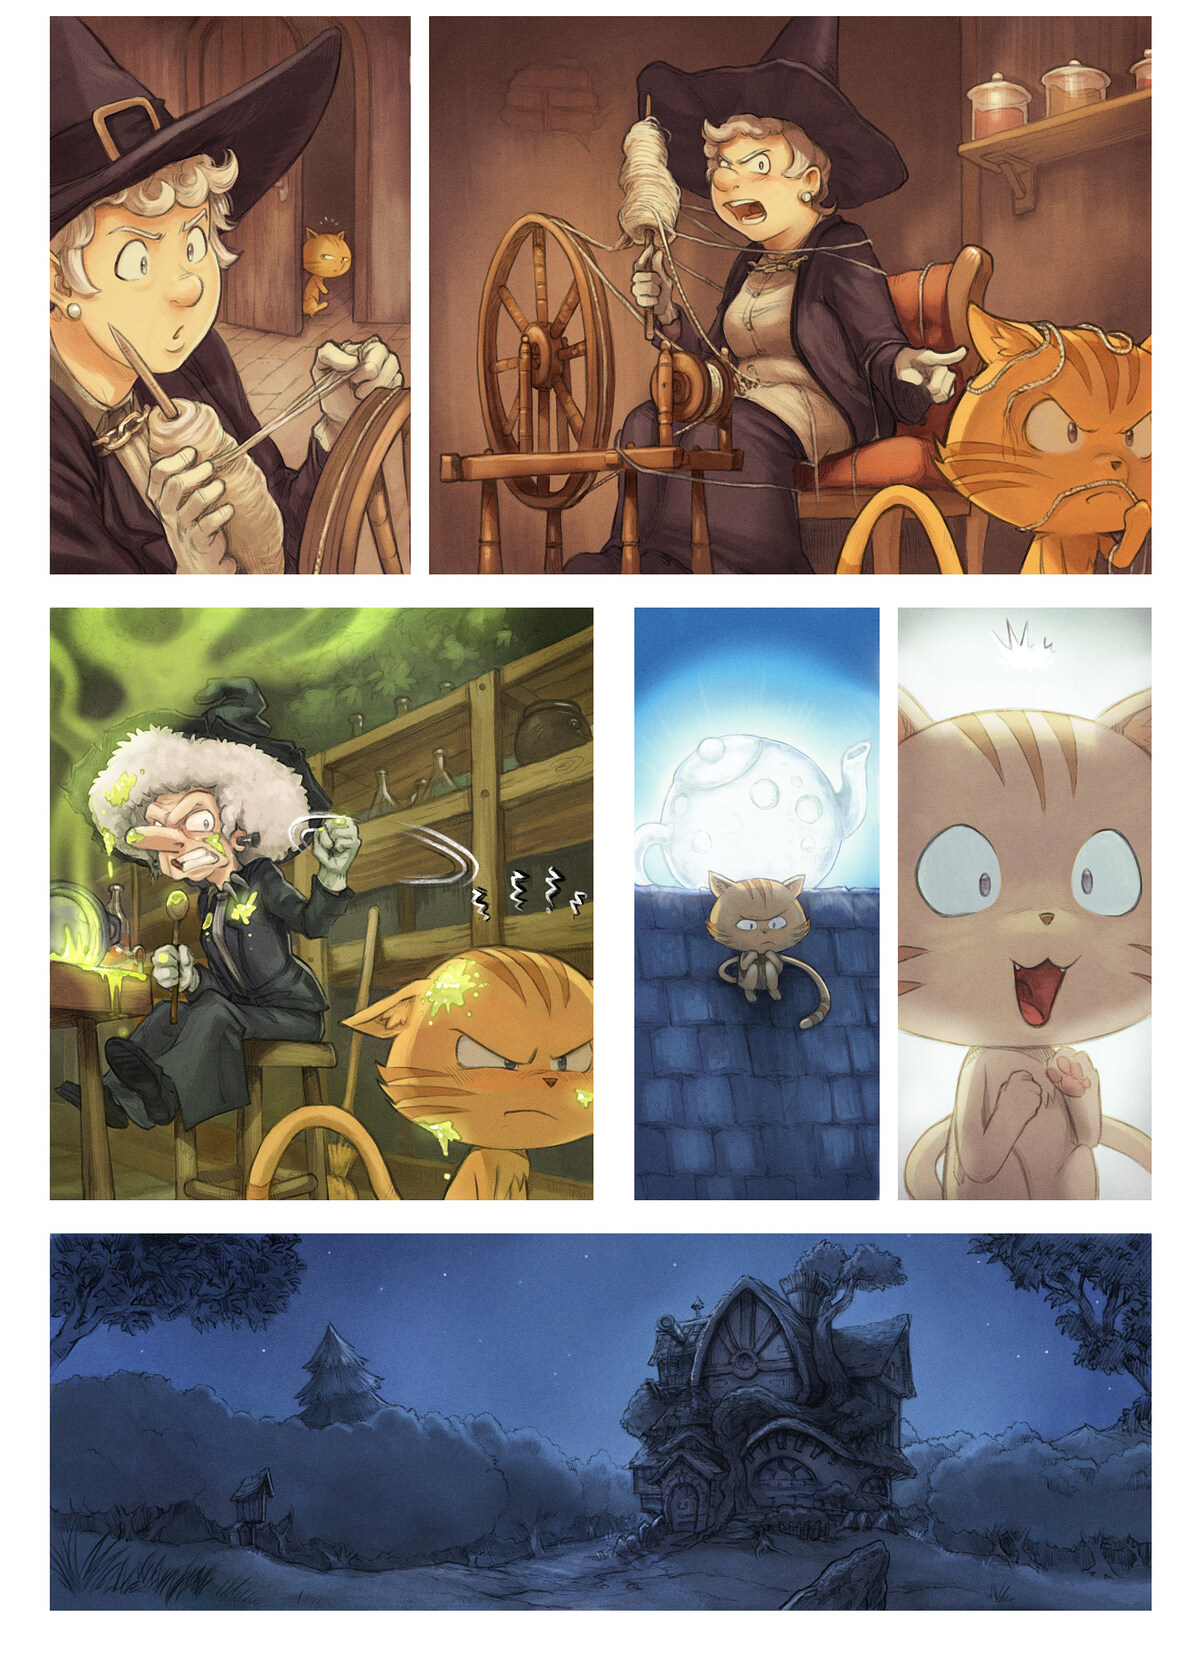 A webcomic page of Pepper&Carrot, episode 30 [no], side 4